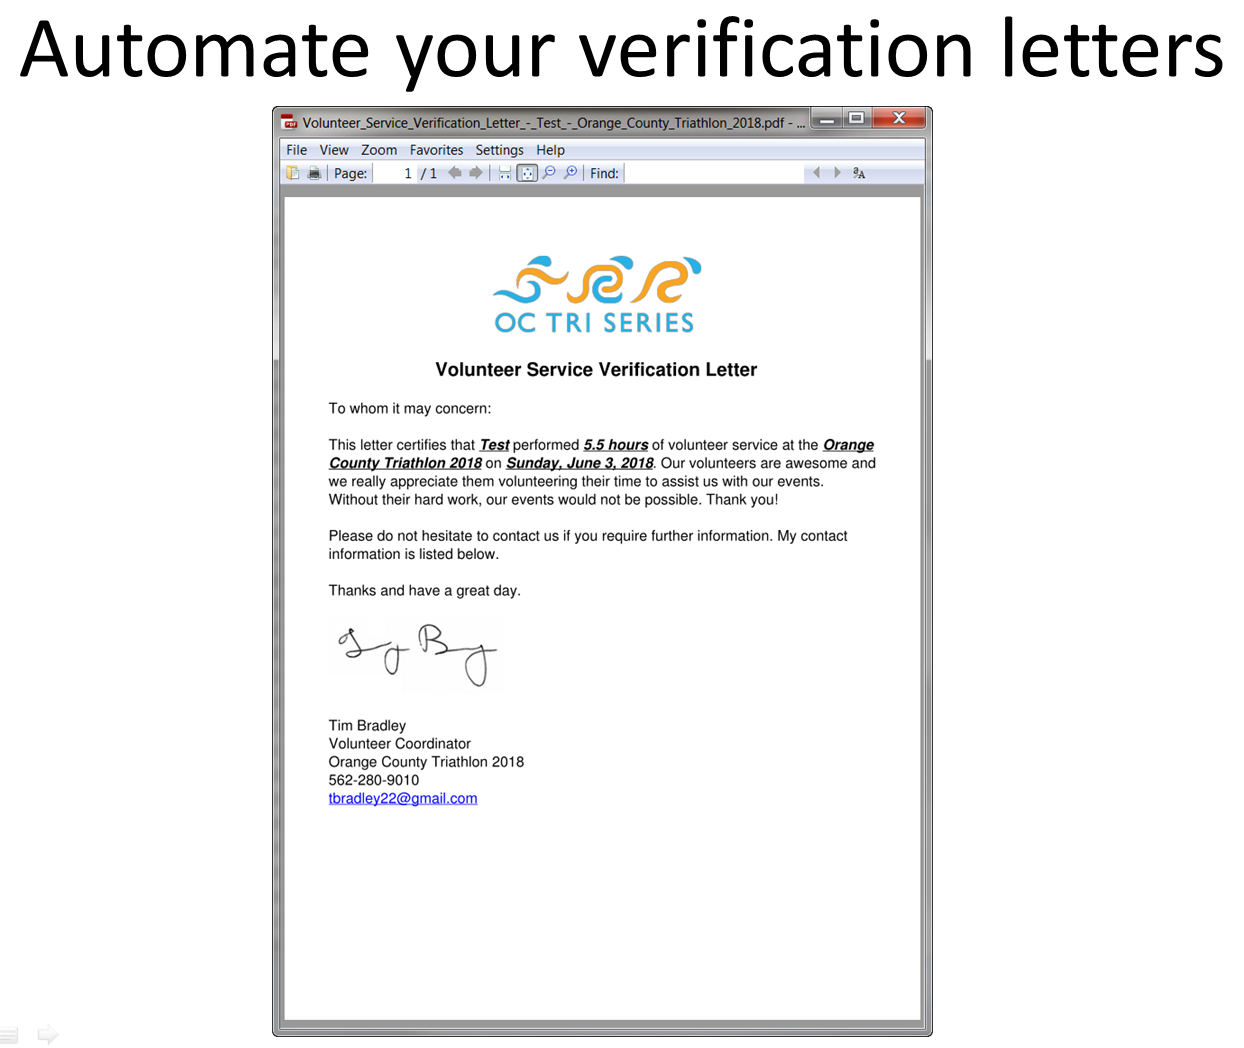 verification_letters.png